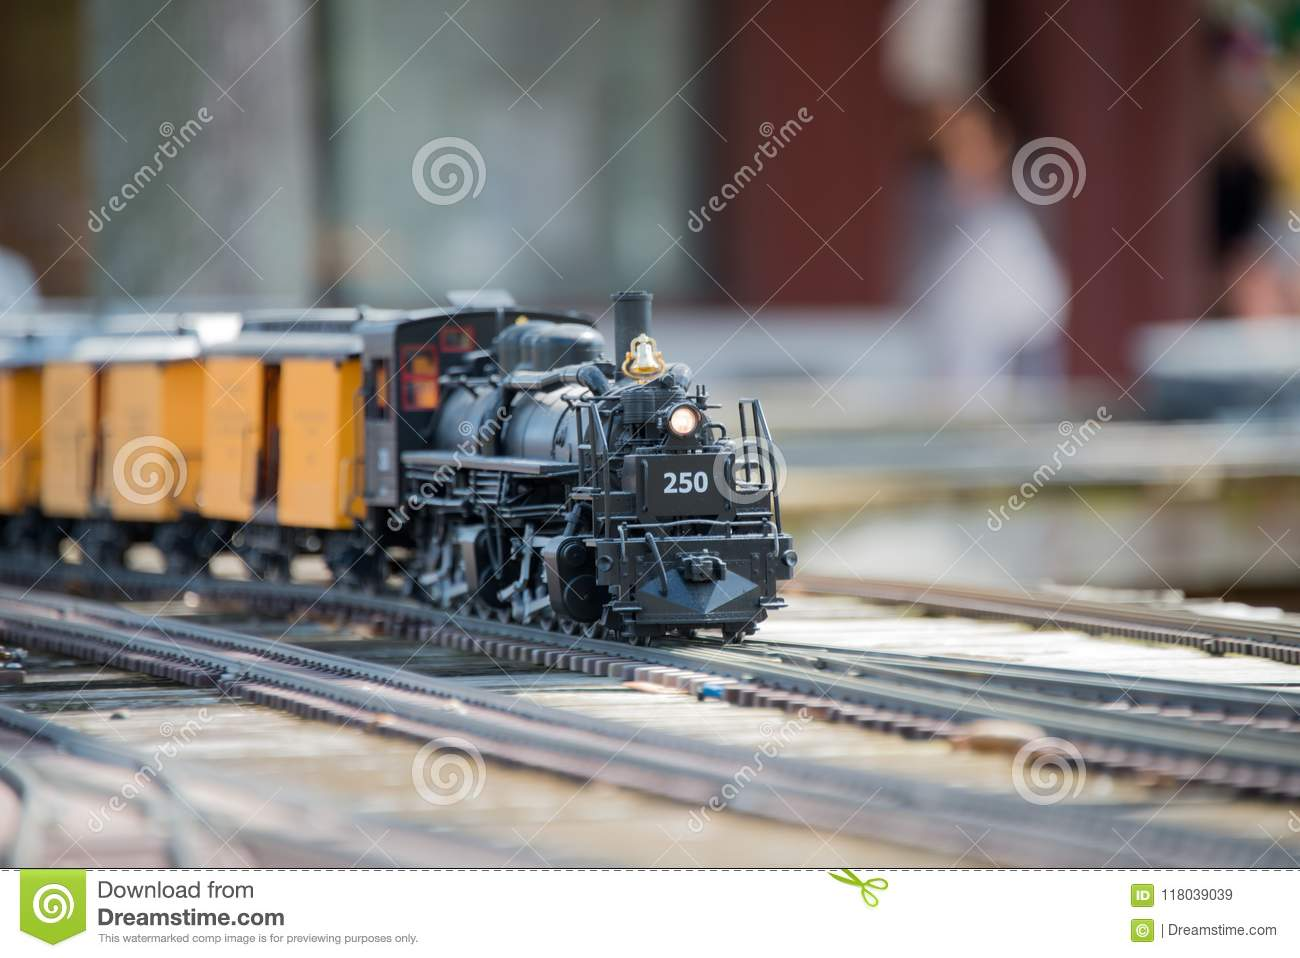 Toy Train on the Track and Model Railroad Exhibit